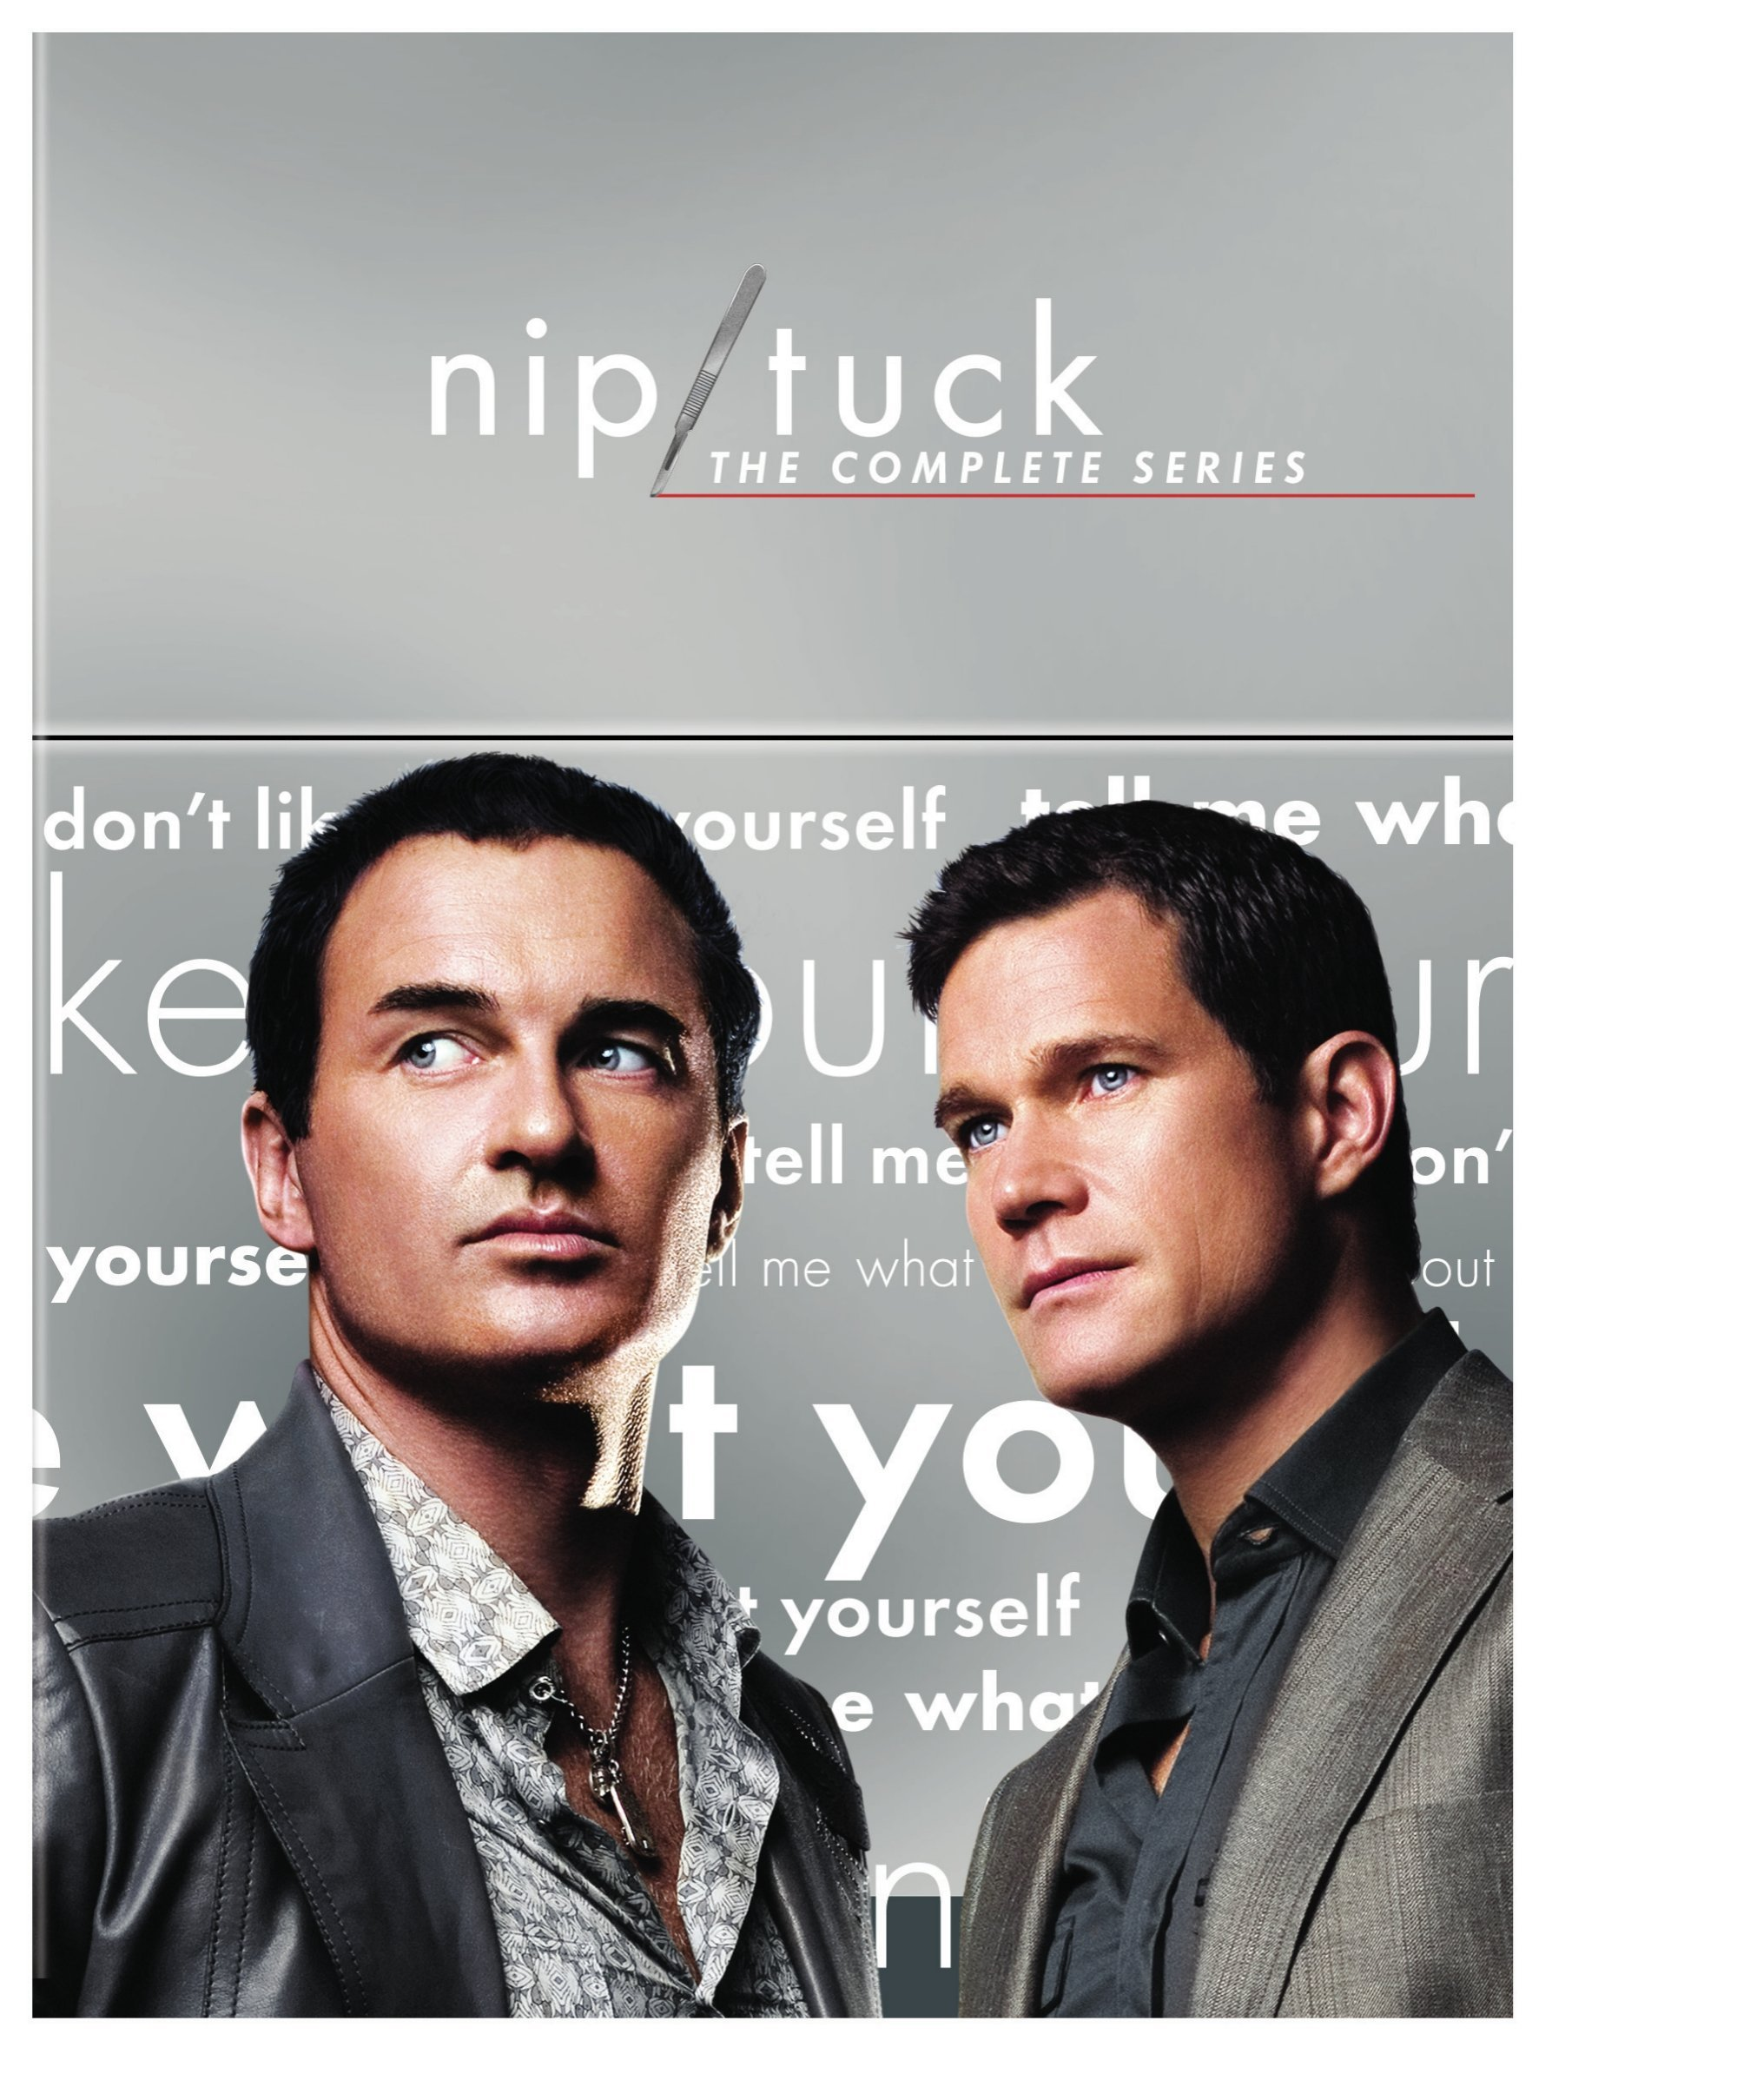 Nip/Tuck: The Complete Series by Warner Manufacturing